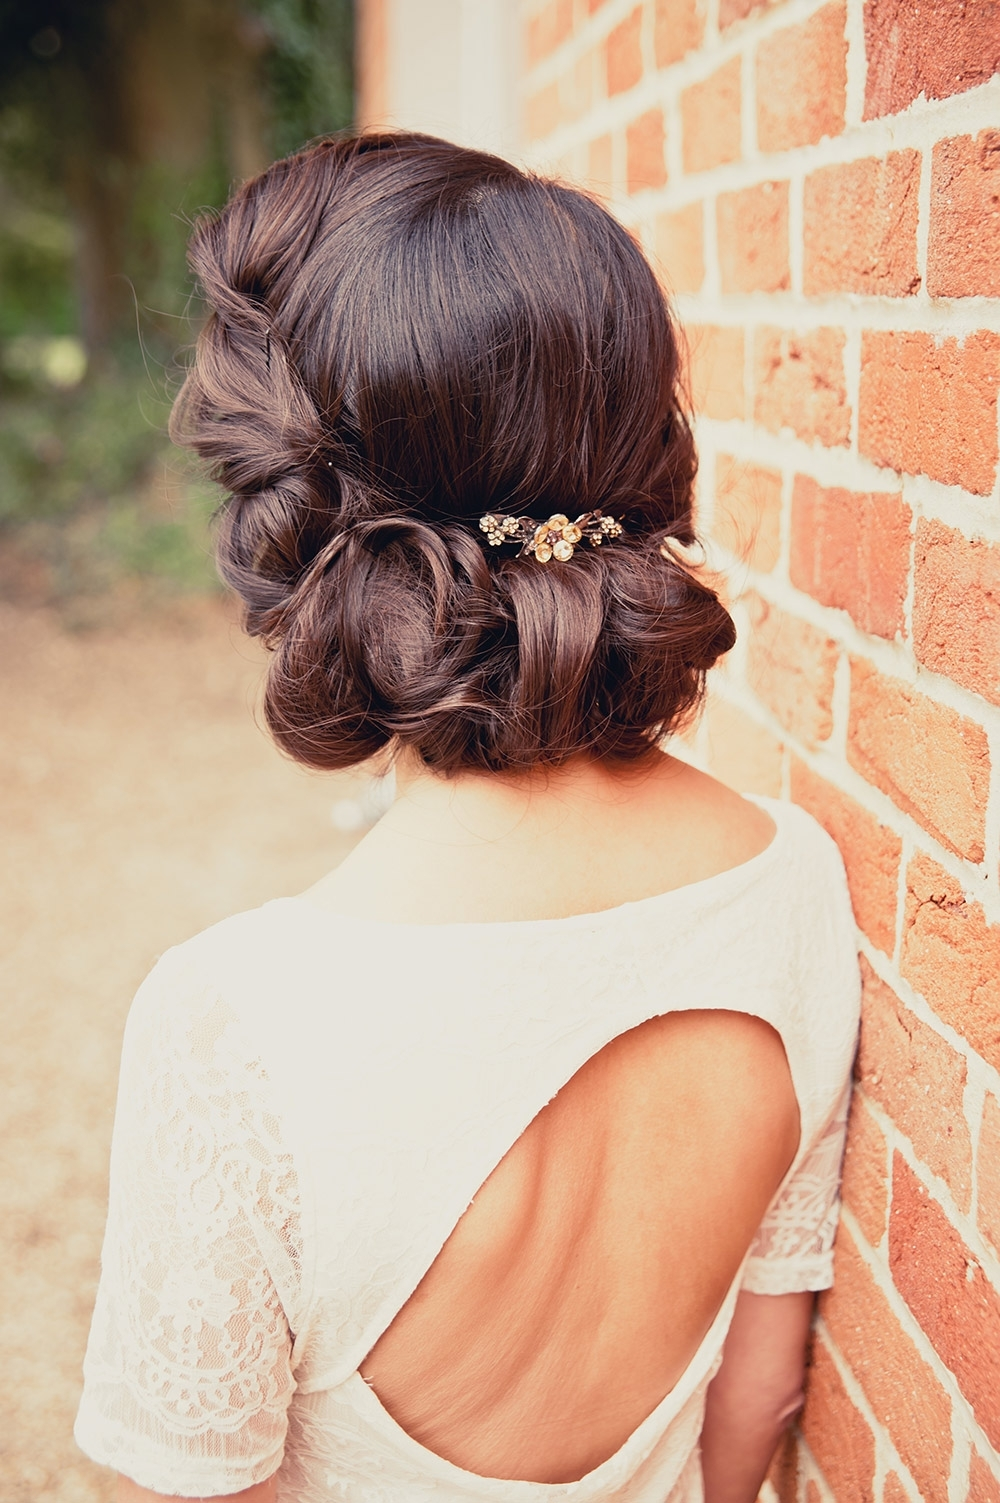 Retro Wedding Hairstyles (View 11 of 15)